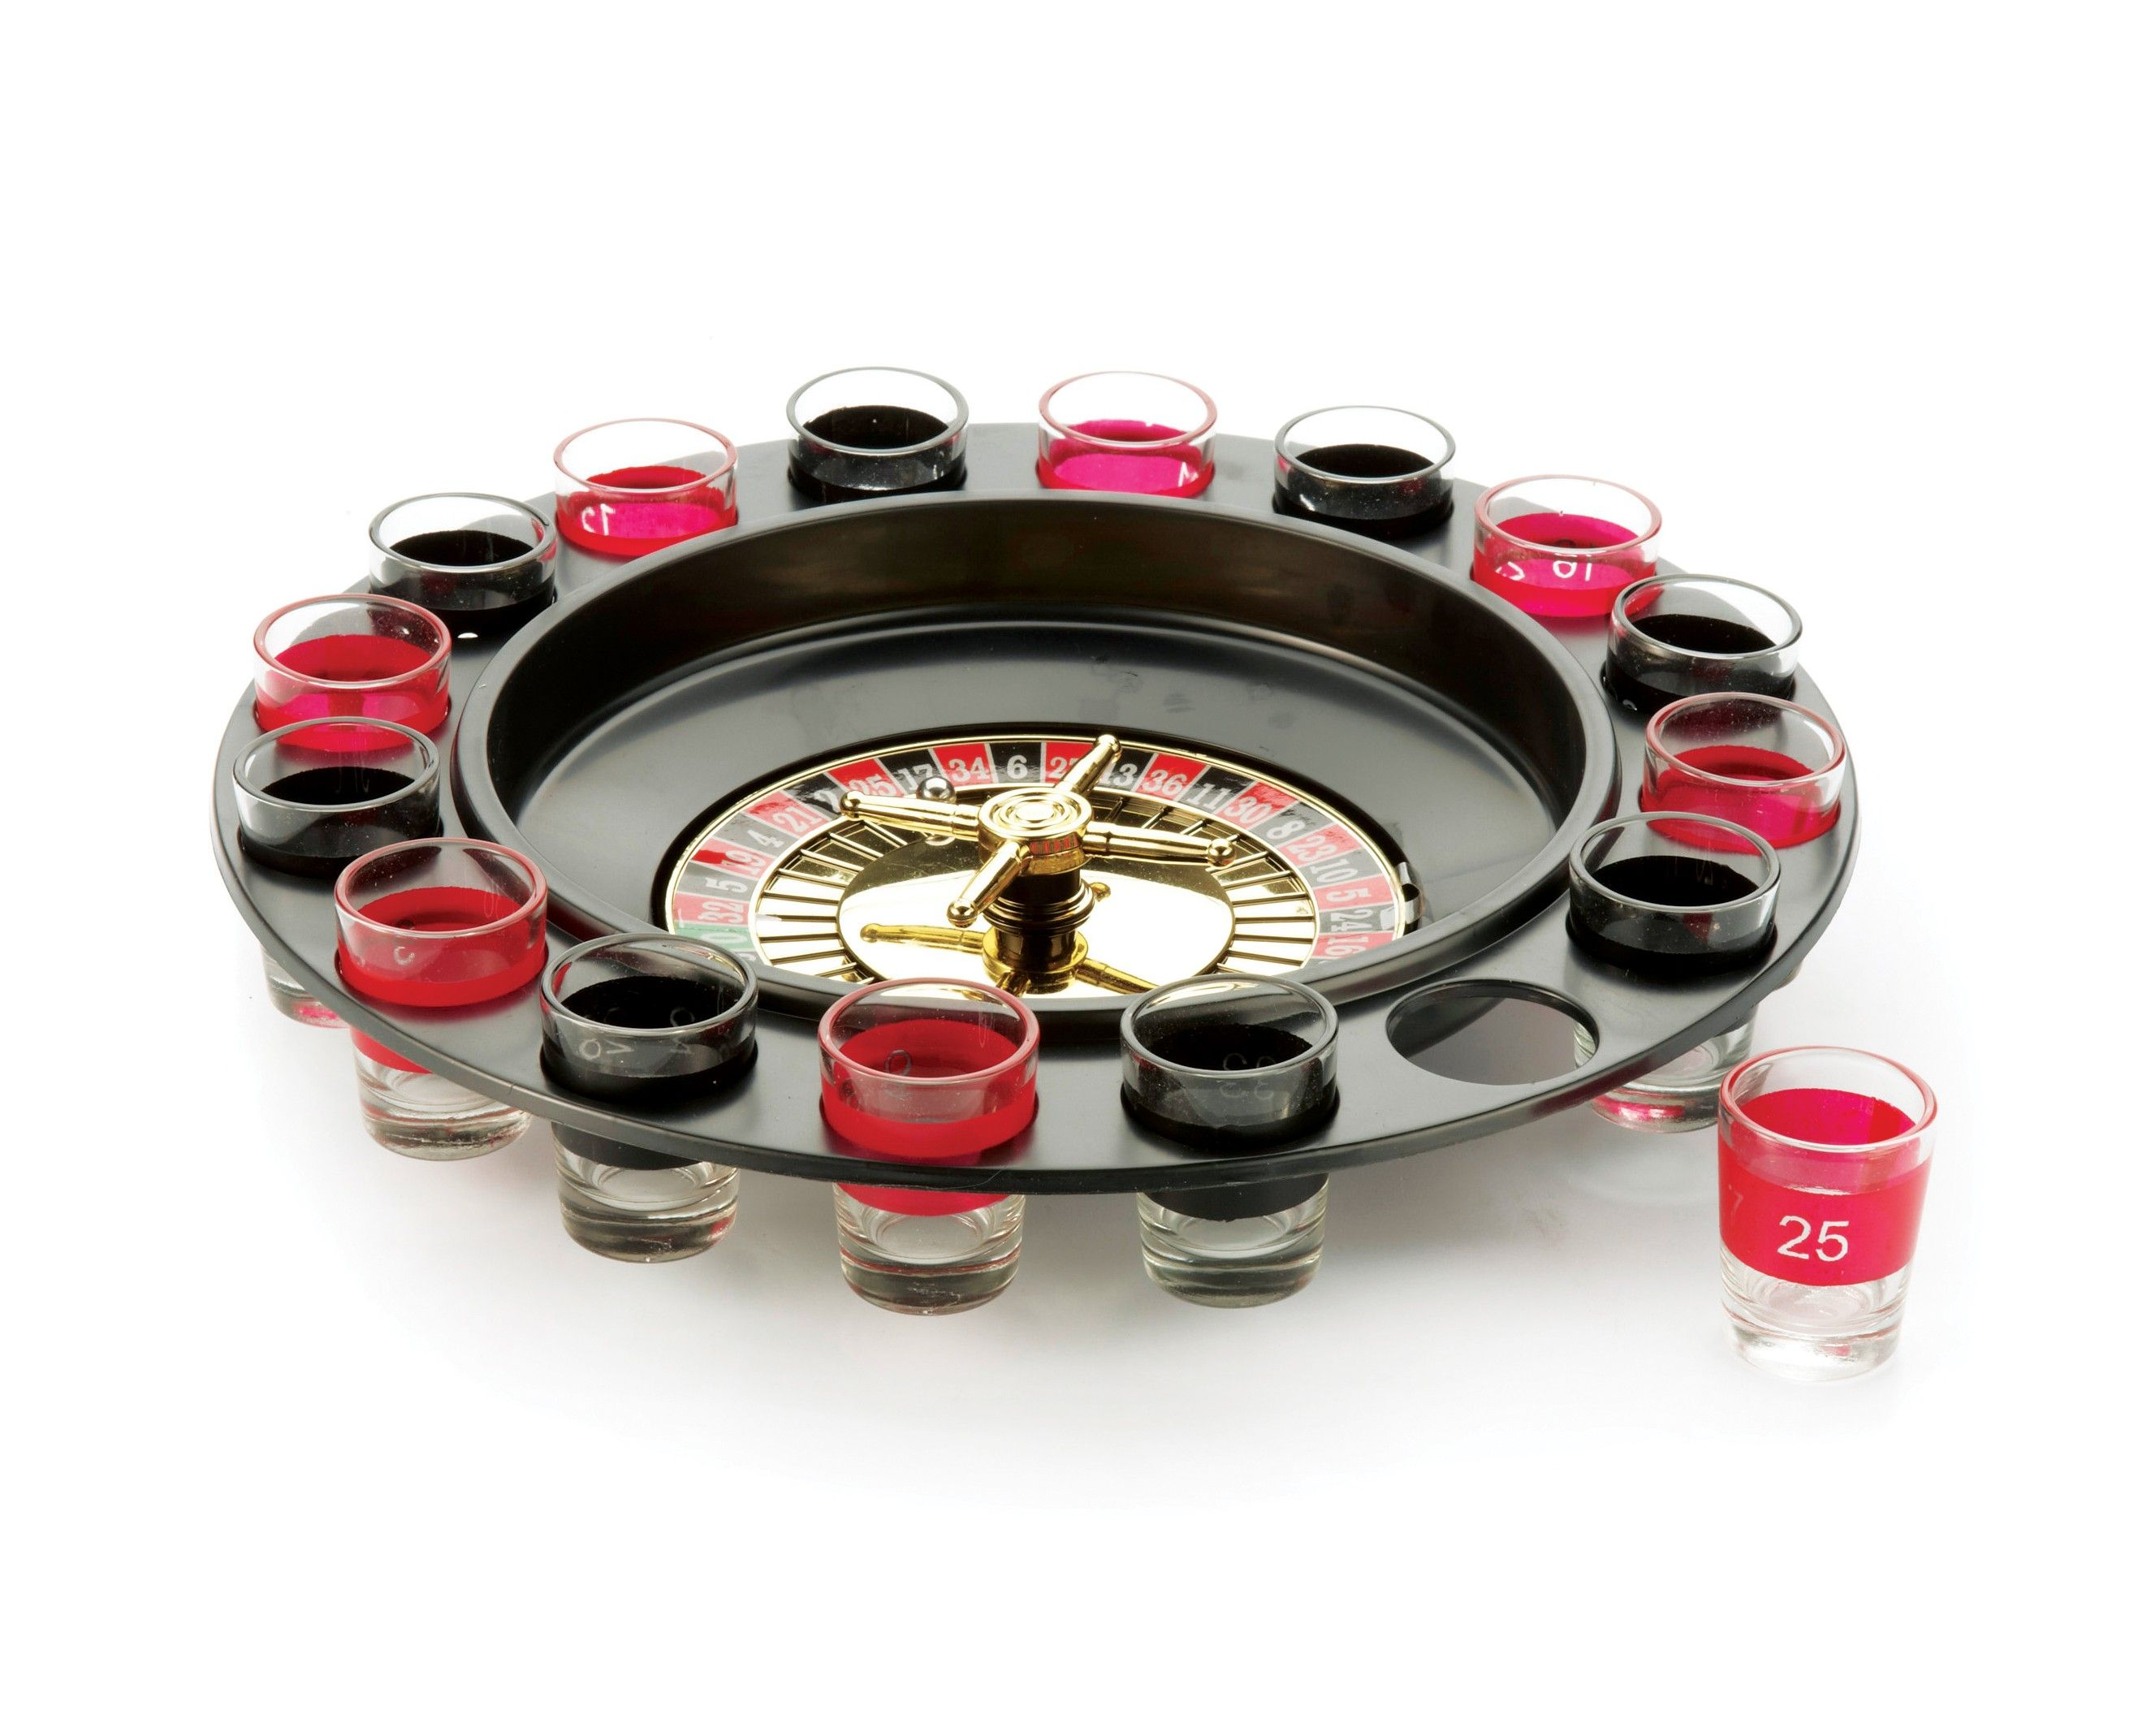 Drinking Roulette Game Home Decor Stokes Inc. Canada's